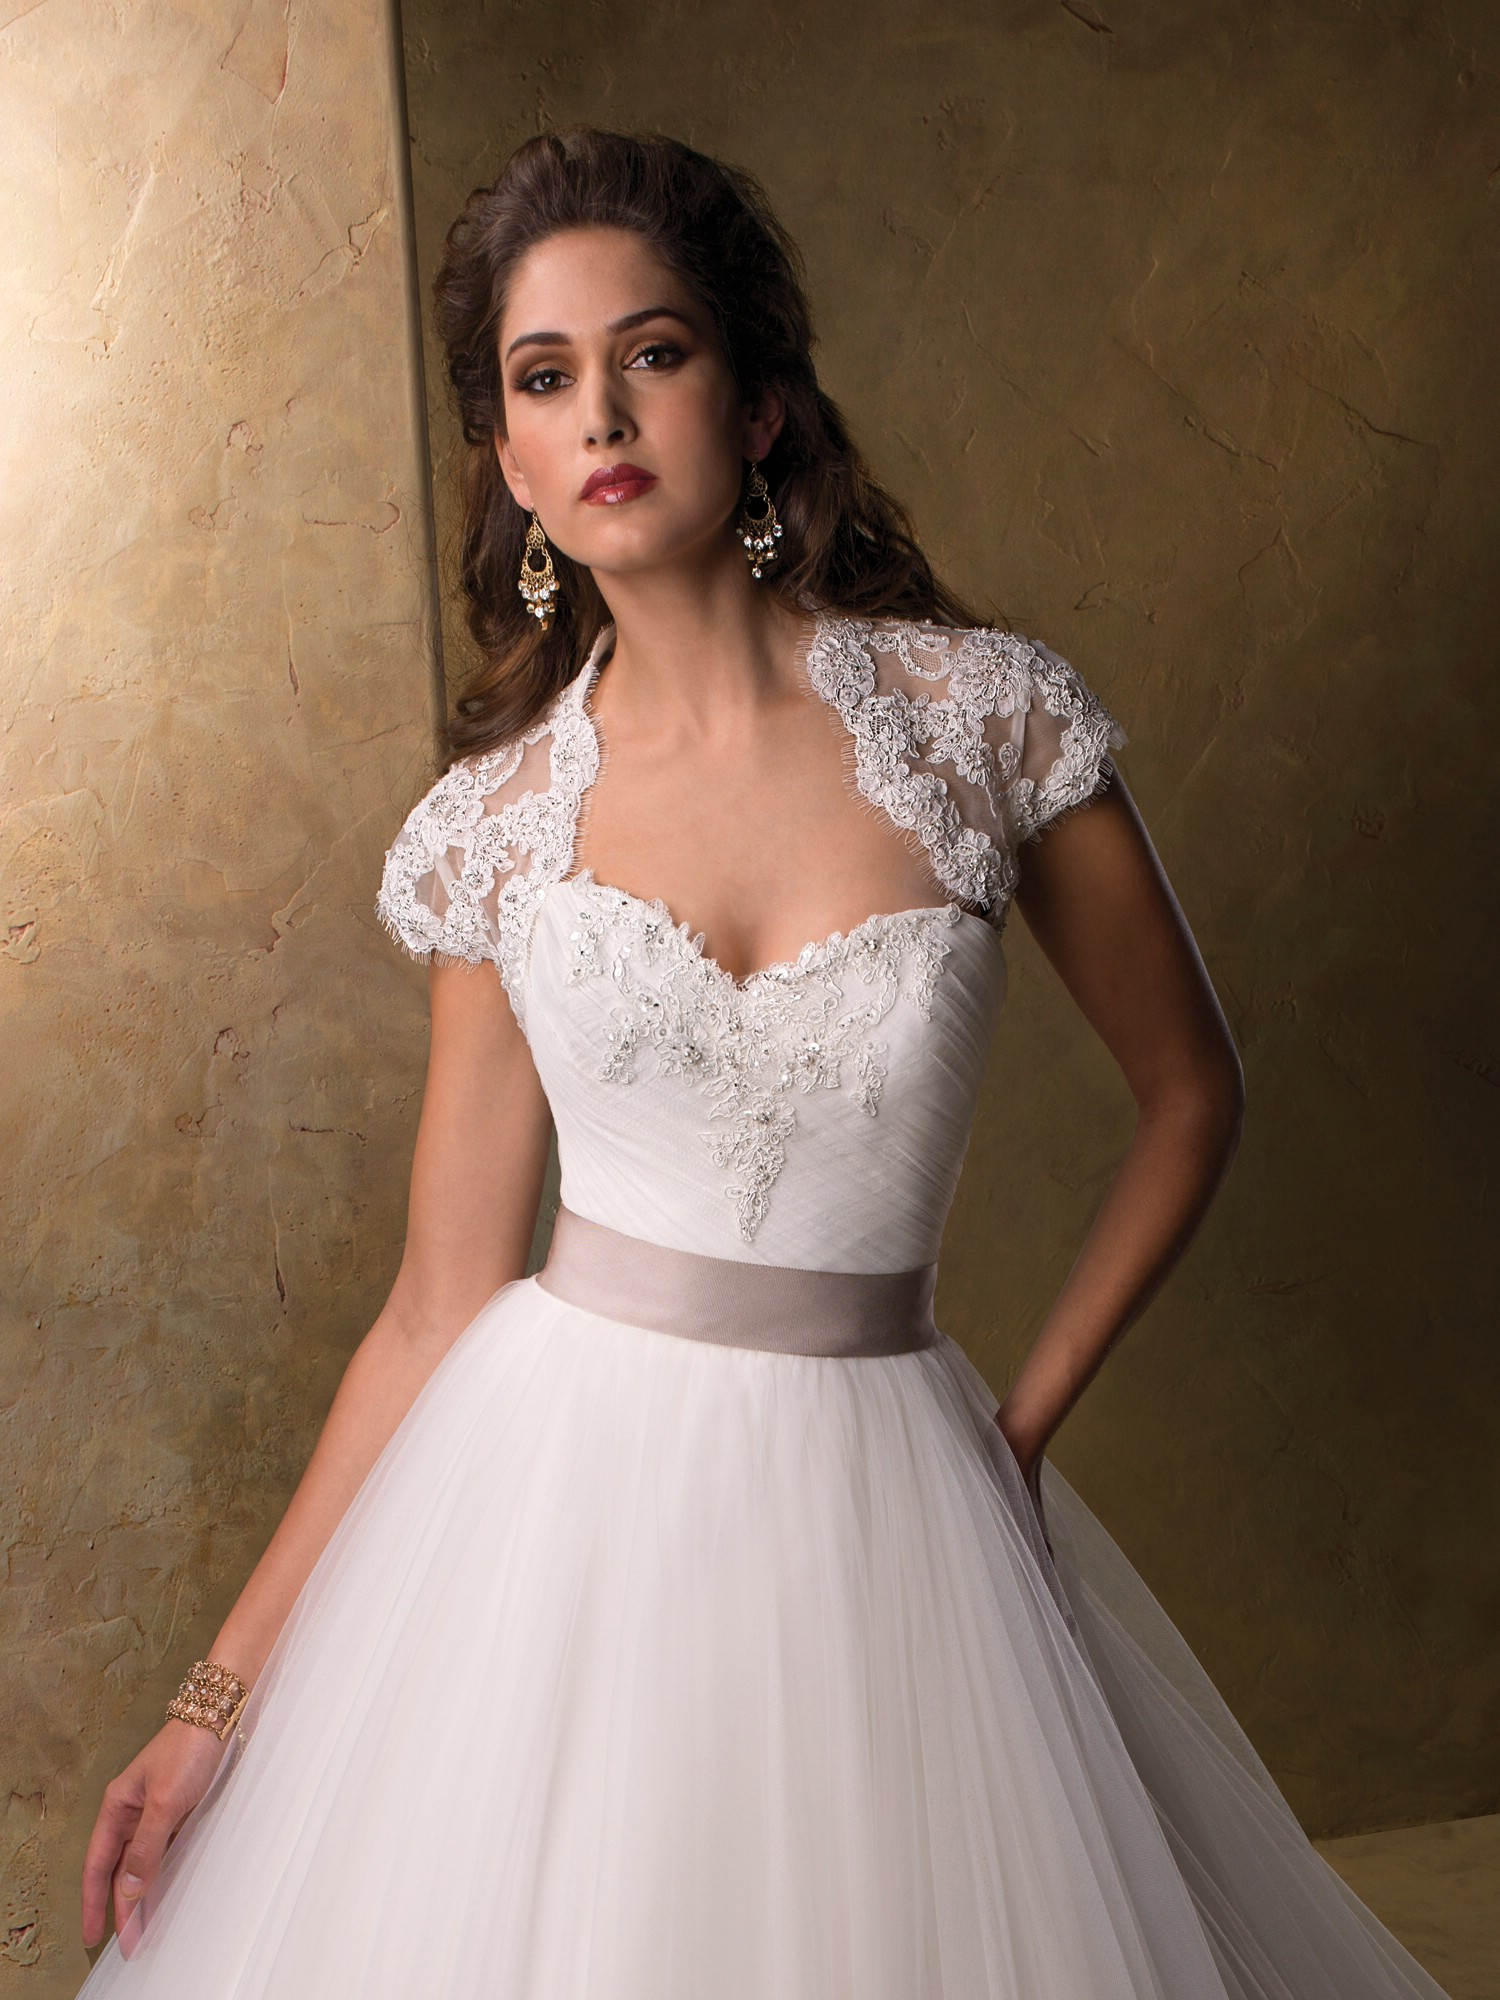 Top 10 2013 Wedding Dress style illusion neckline 4